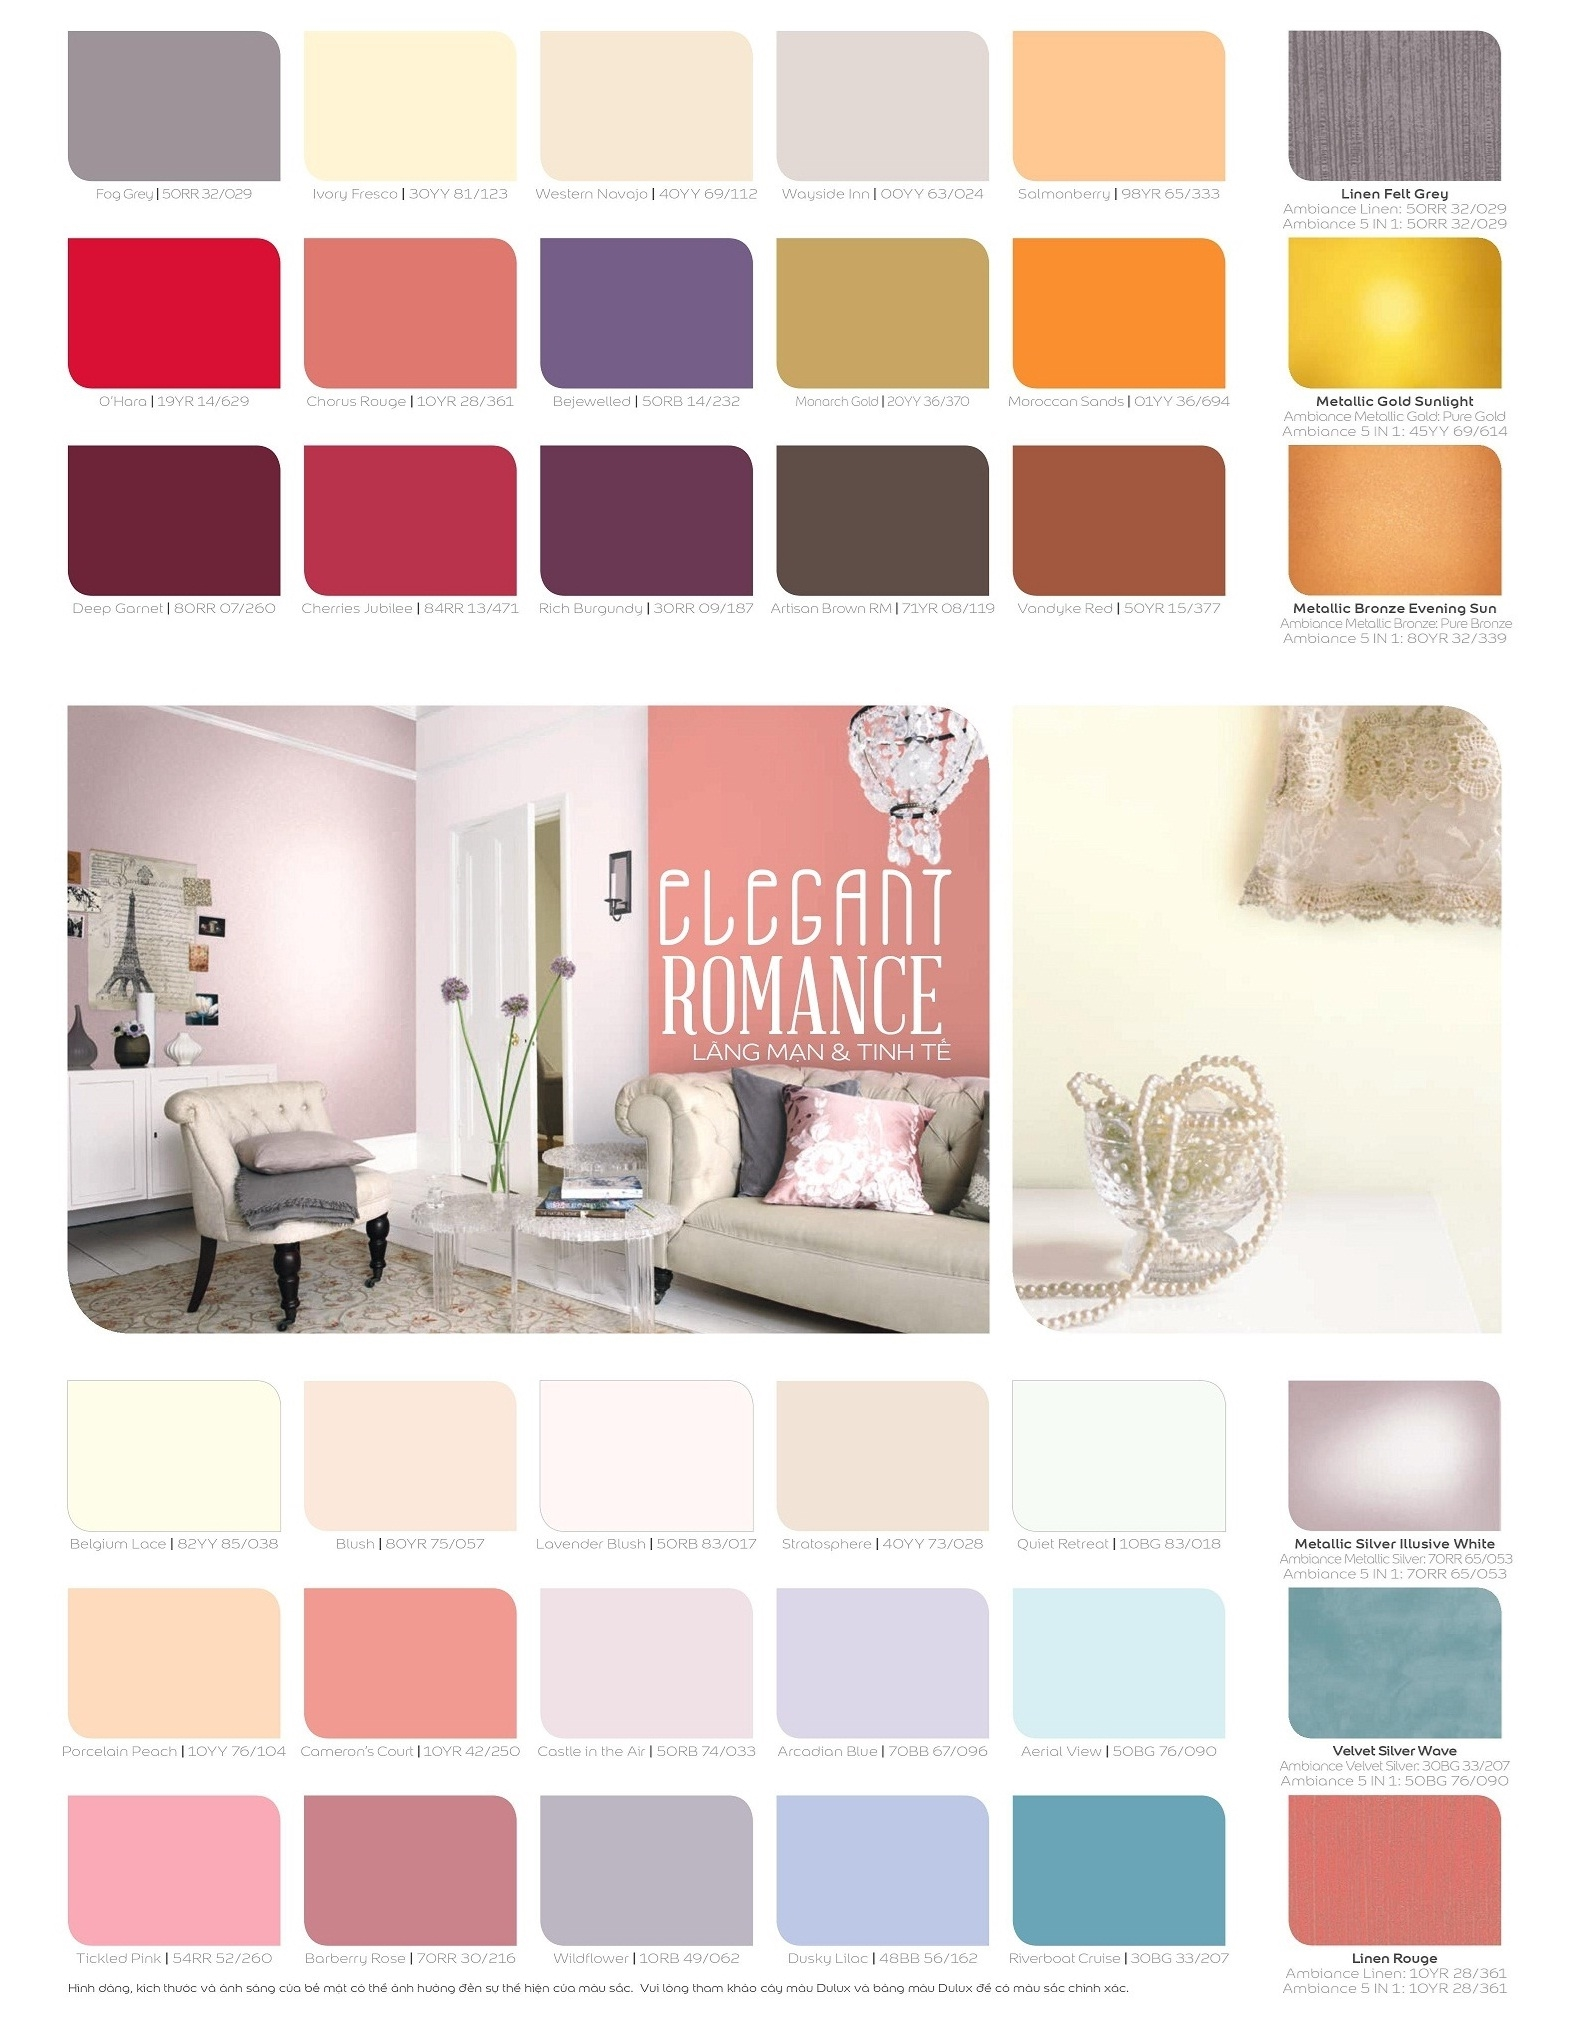 son-mai-anh-bang-mau-son-nuoc-dulux-trong-nha-dulux-ambiance-5in1-4